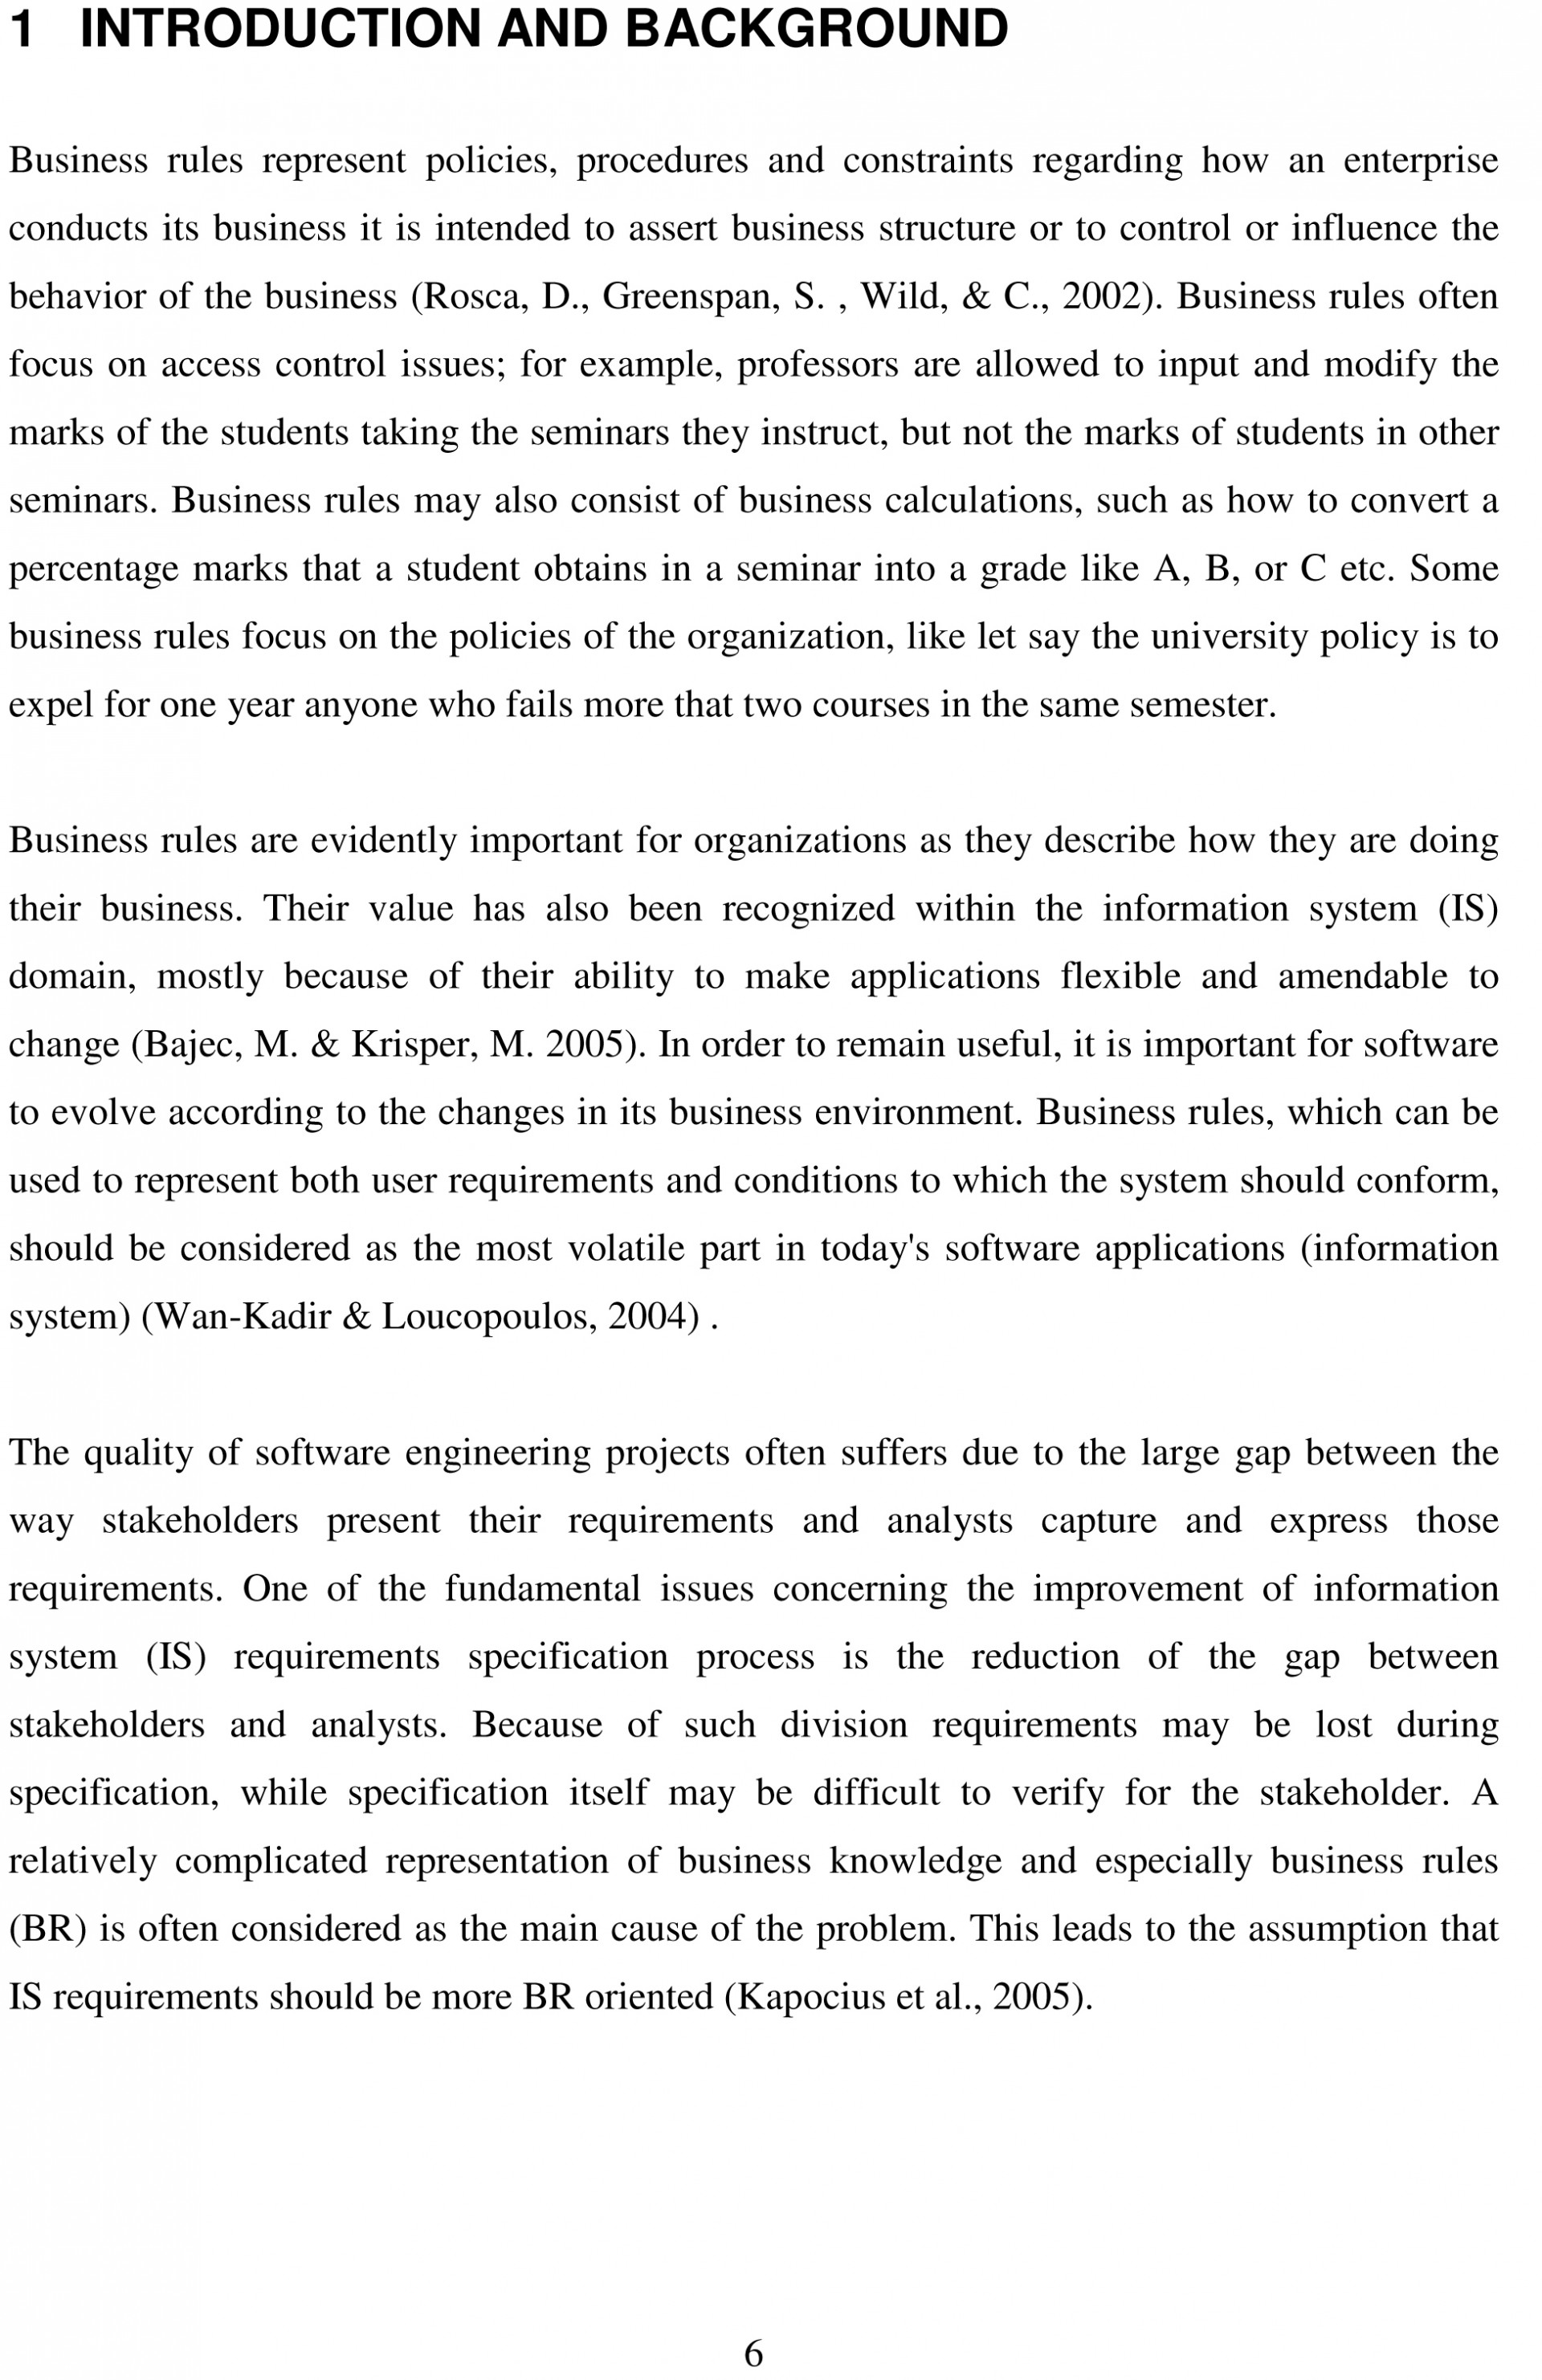 005 Research Paper Thesis Free Sample1 Help Me With My Stirring For 1920